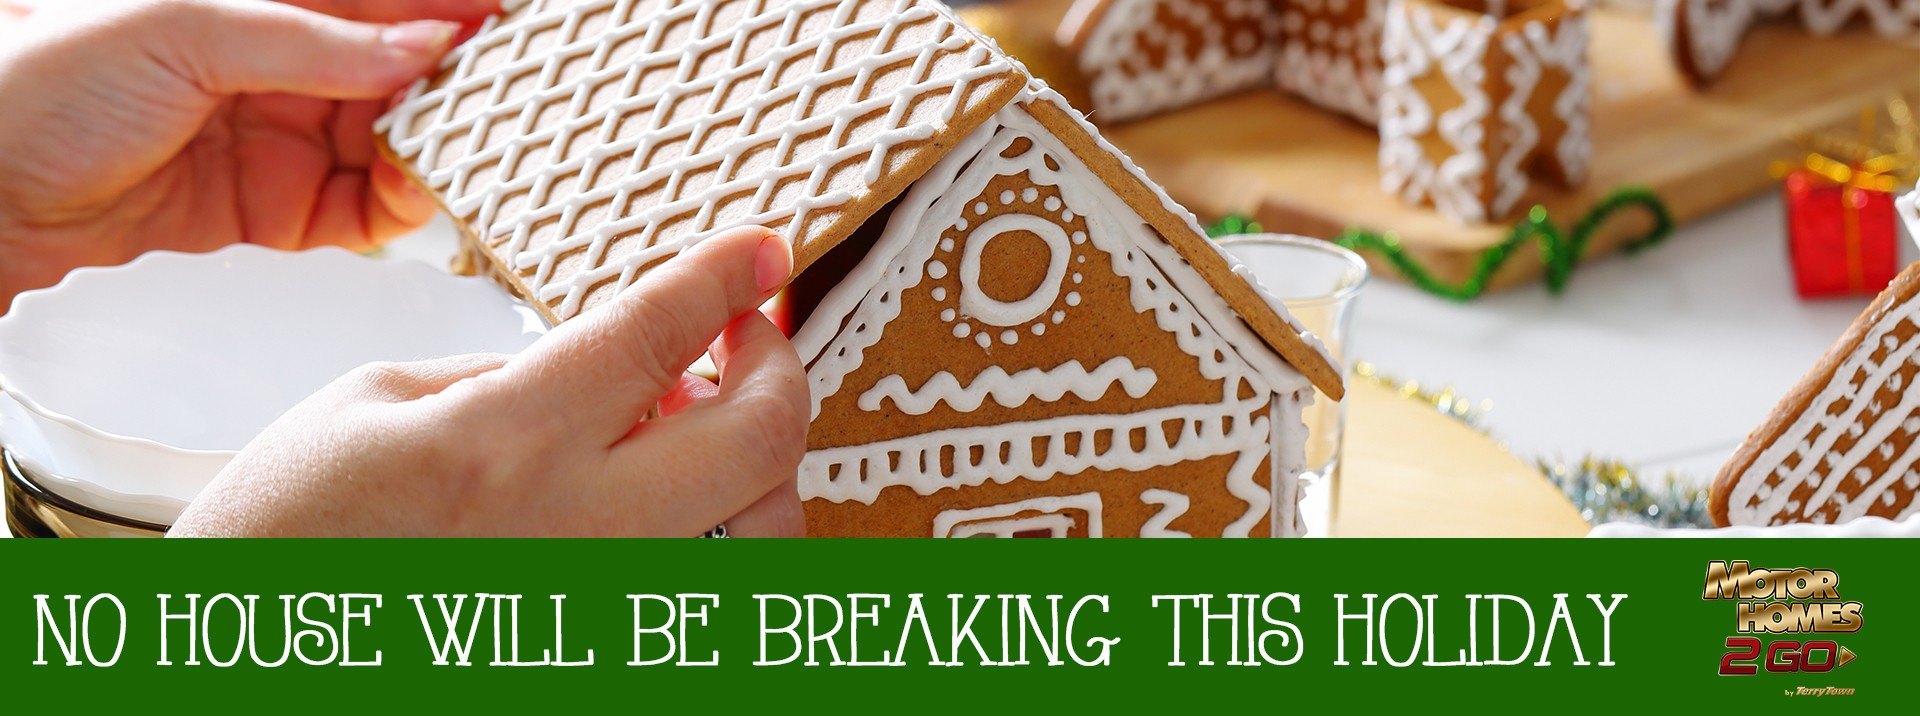 no house will be breaking this holiday